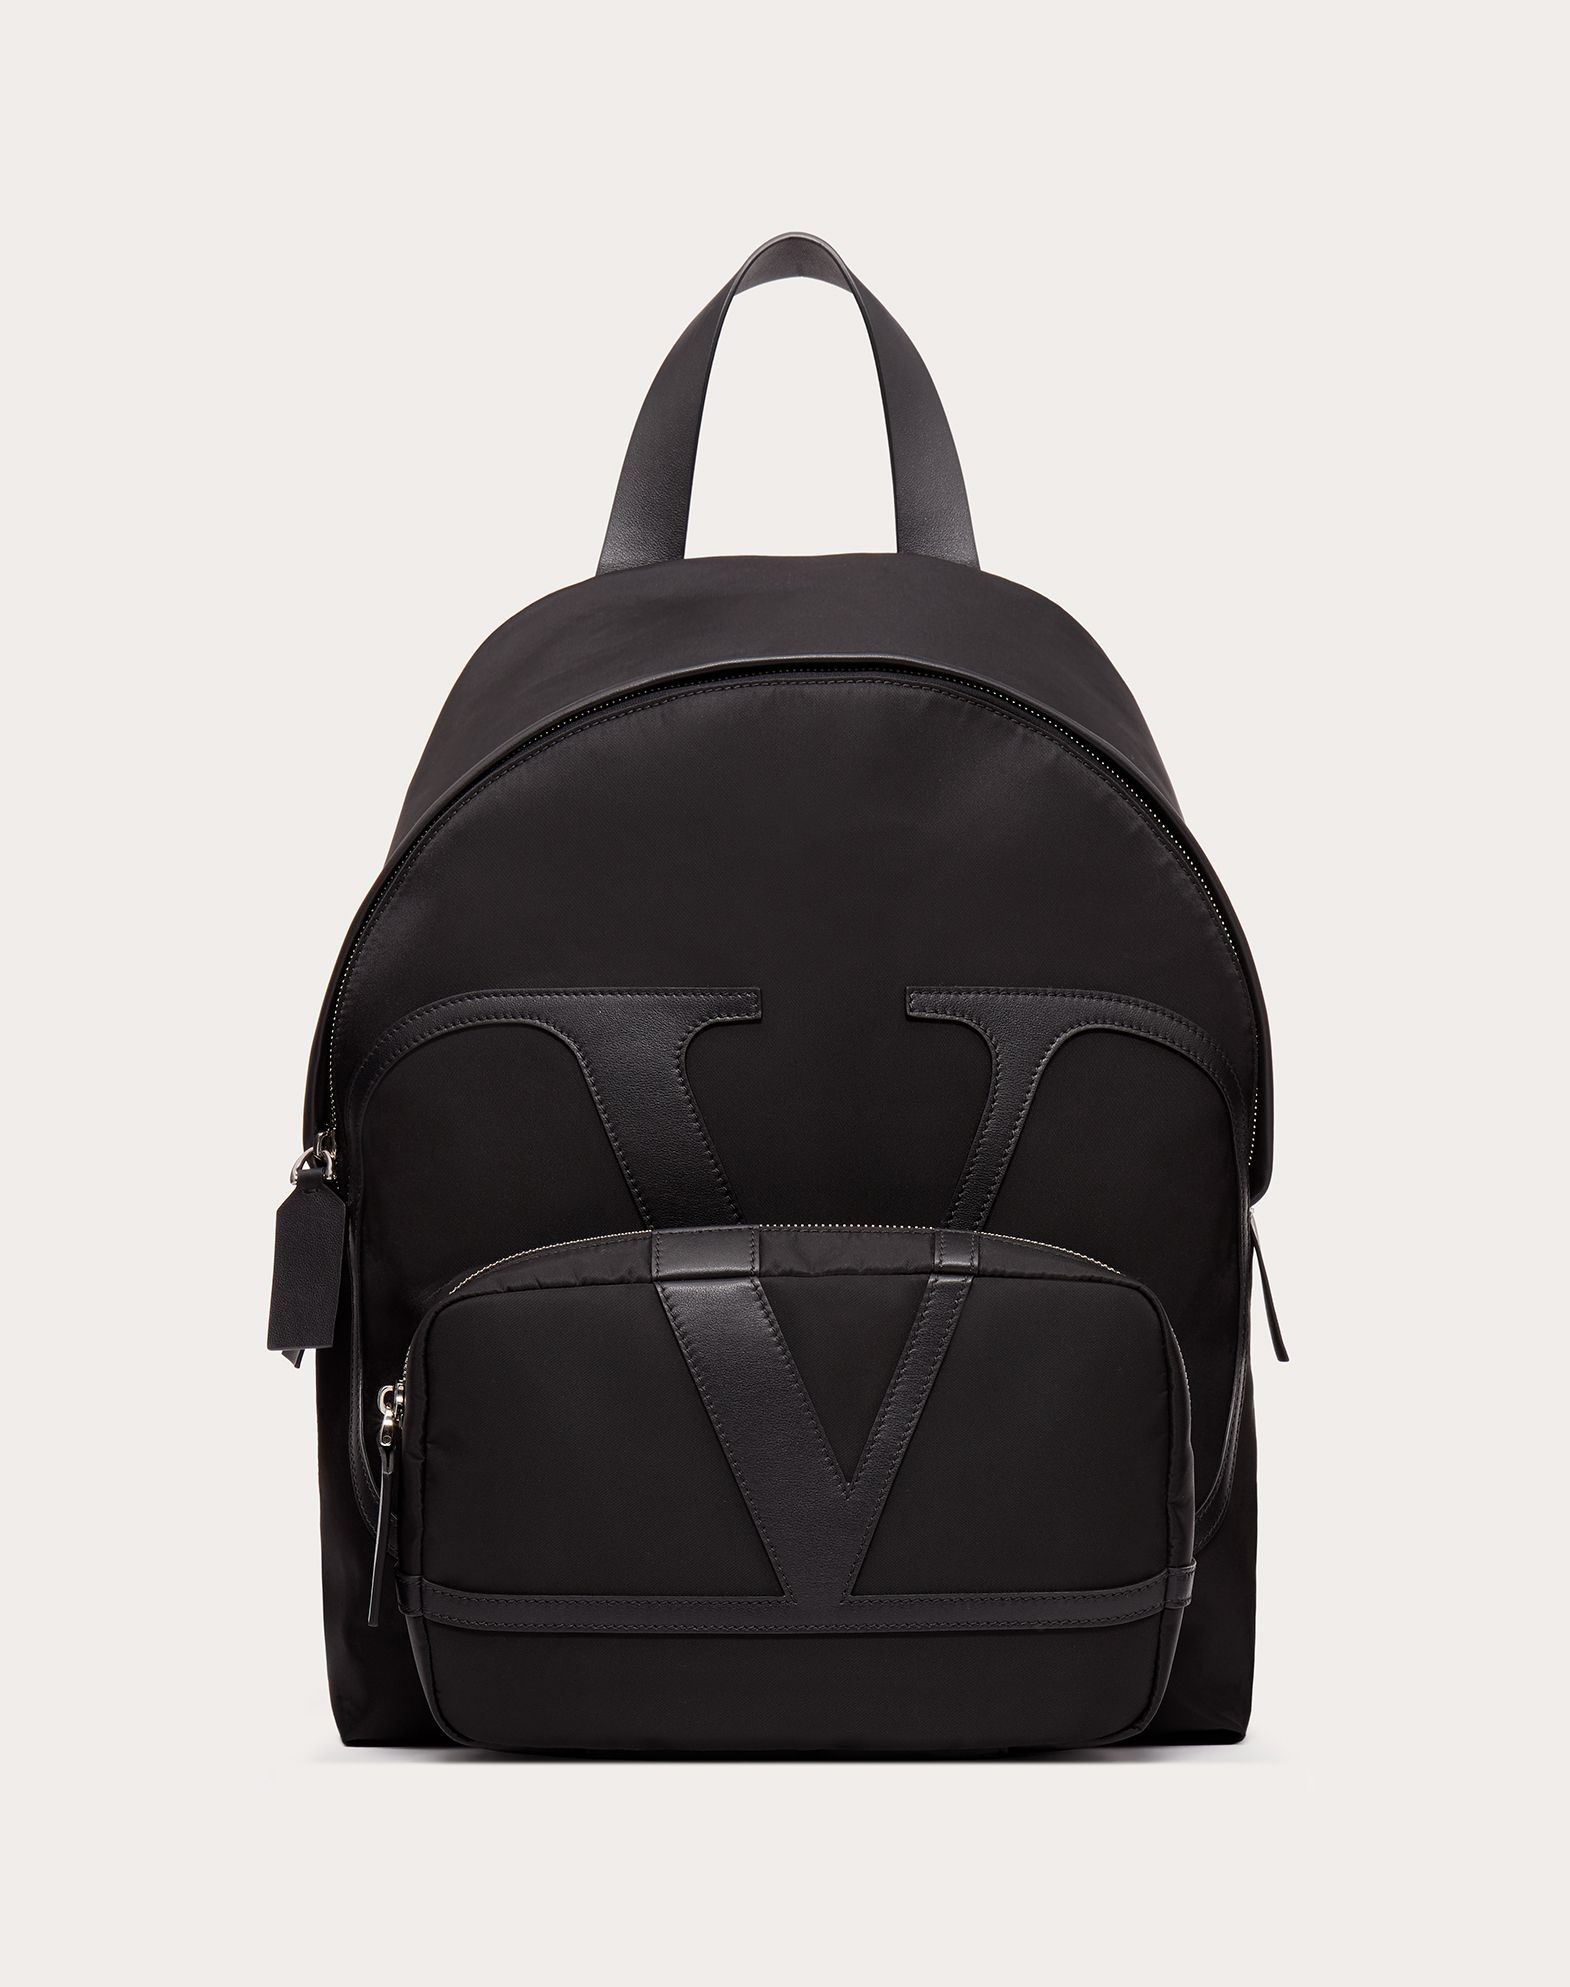 VLOGO Nylon Backpack